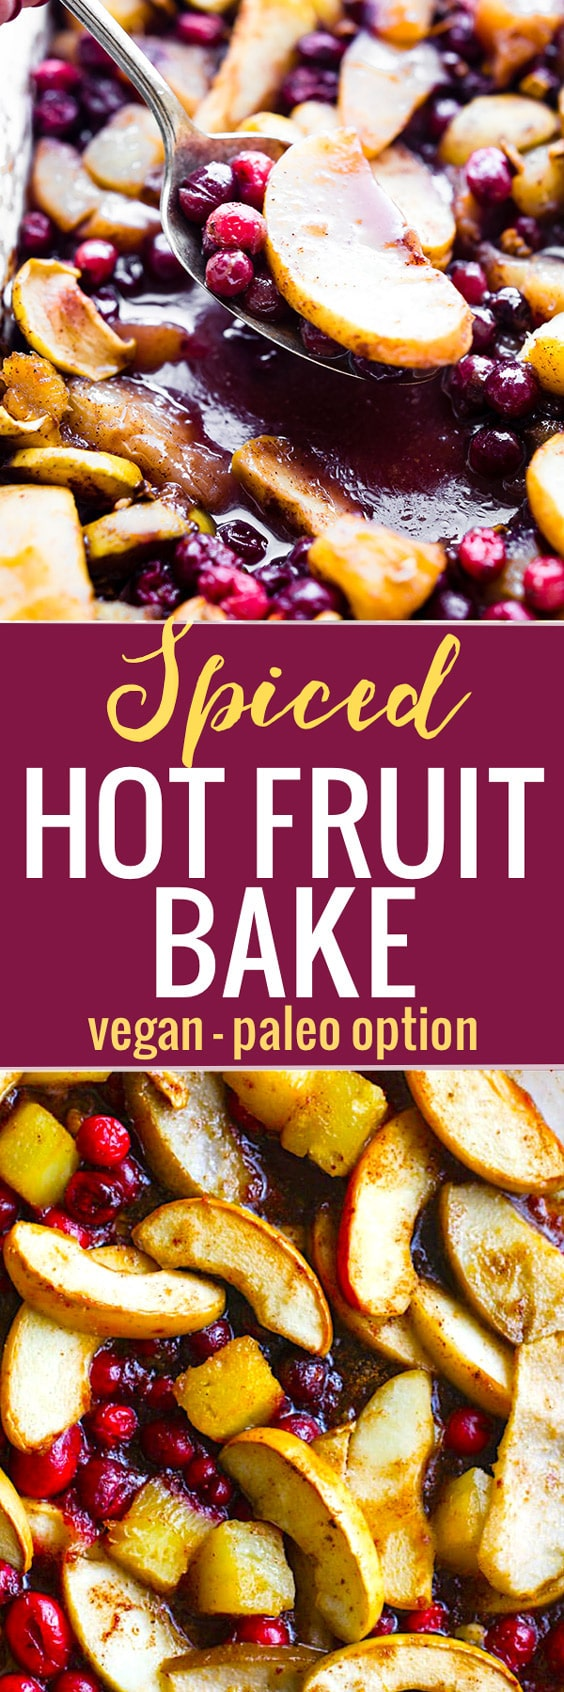 Easy Spiced Hot Fruit Bake! A delicious and healthy holiday breakfast bake! This gluten free spiced hot fruit bake also makes for a great topping for waffles, pancakes, oatmeal, or by simply by itself! A nutritious dish to add to your Christmas or New Year's Brunch! Vegan friendly